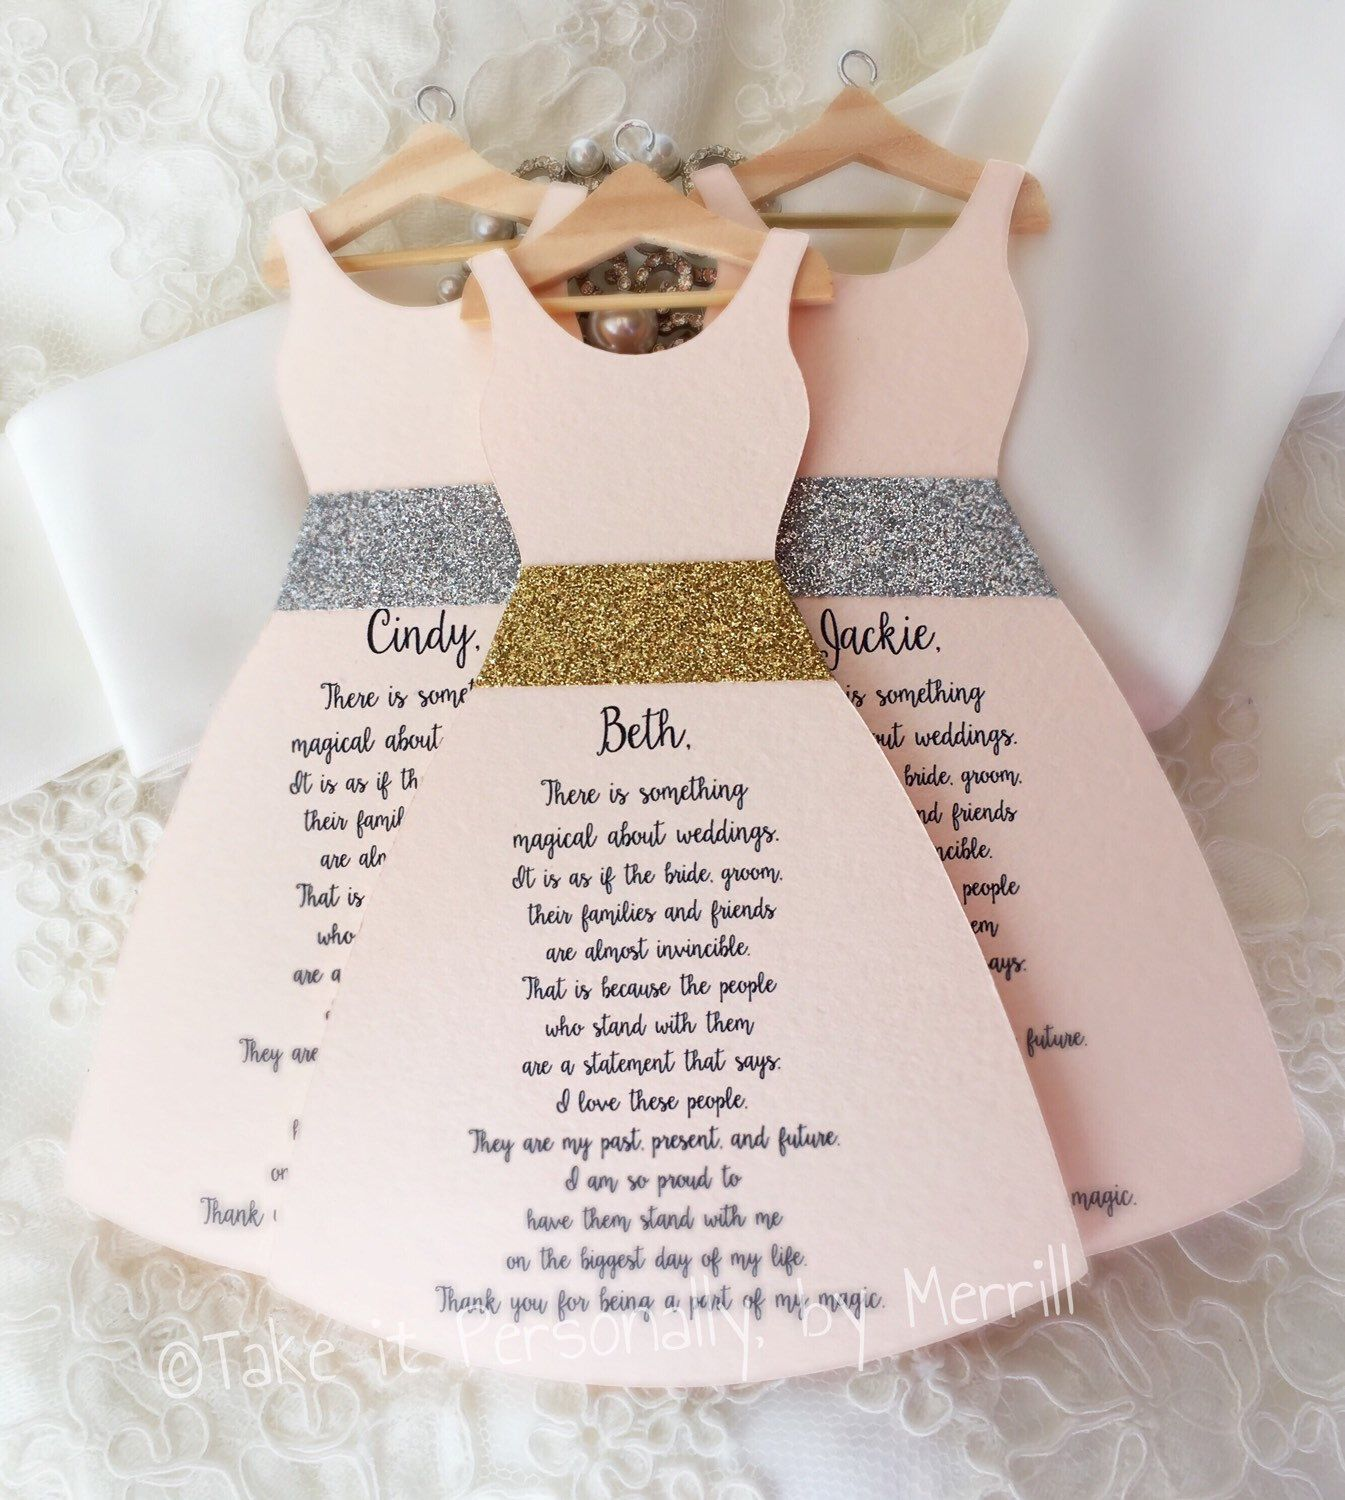 Pin By Take It Personally By Merrill On I Do Pinterest